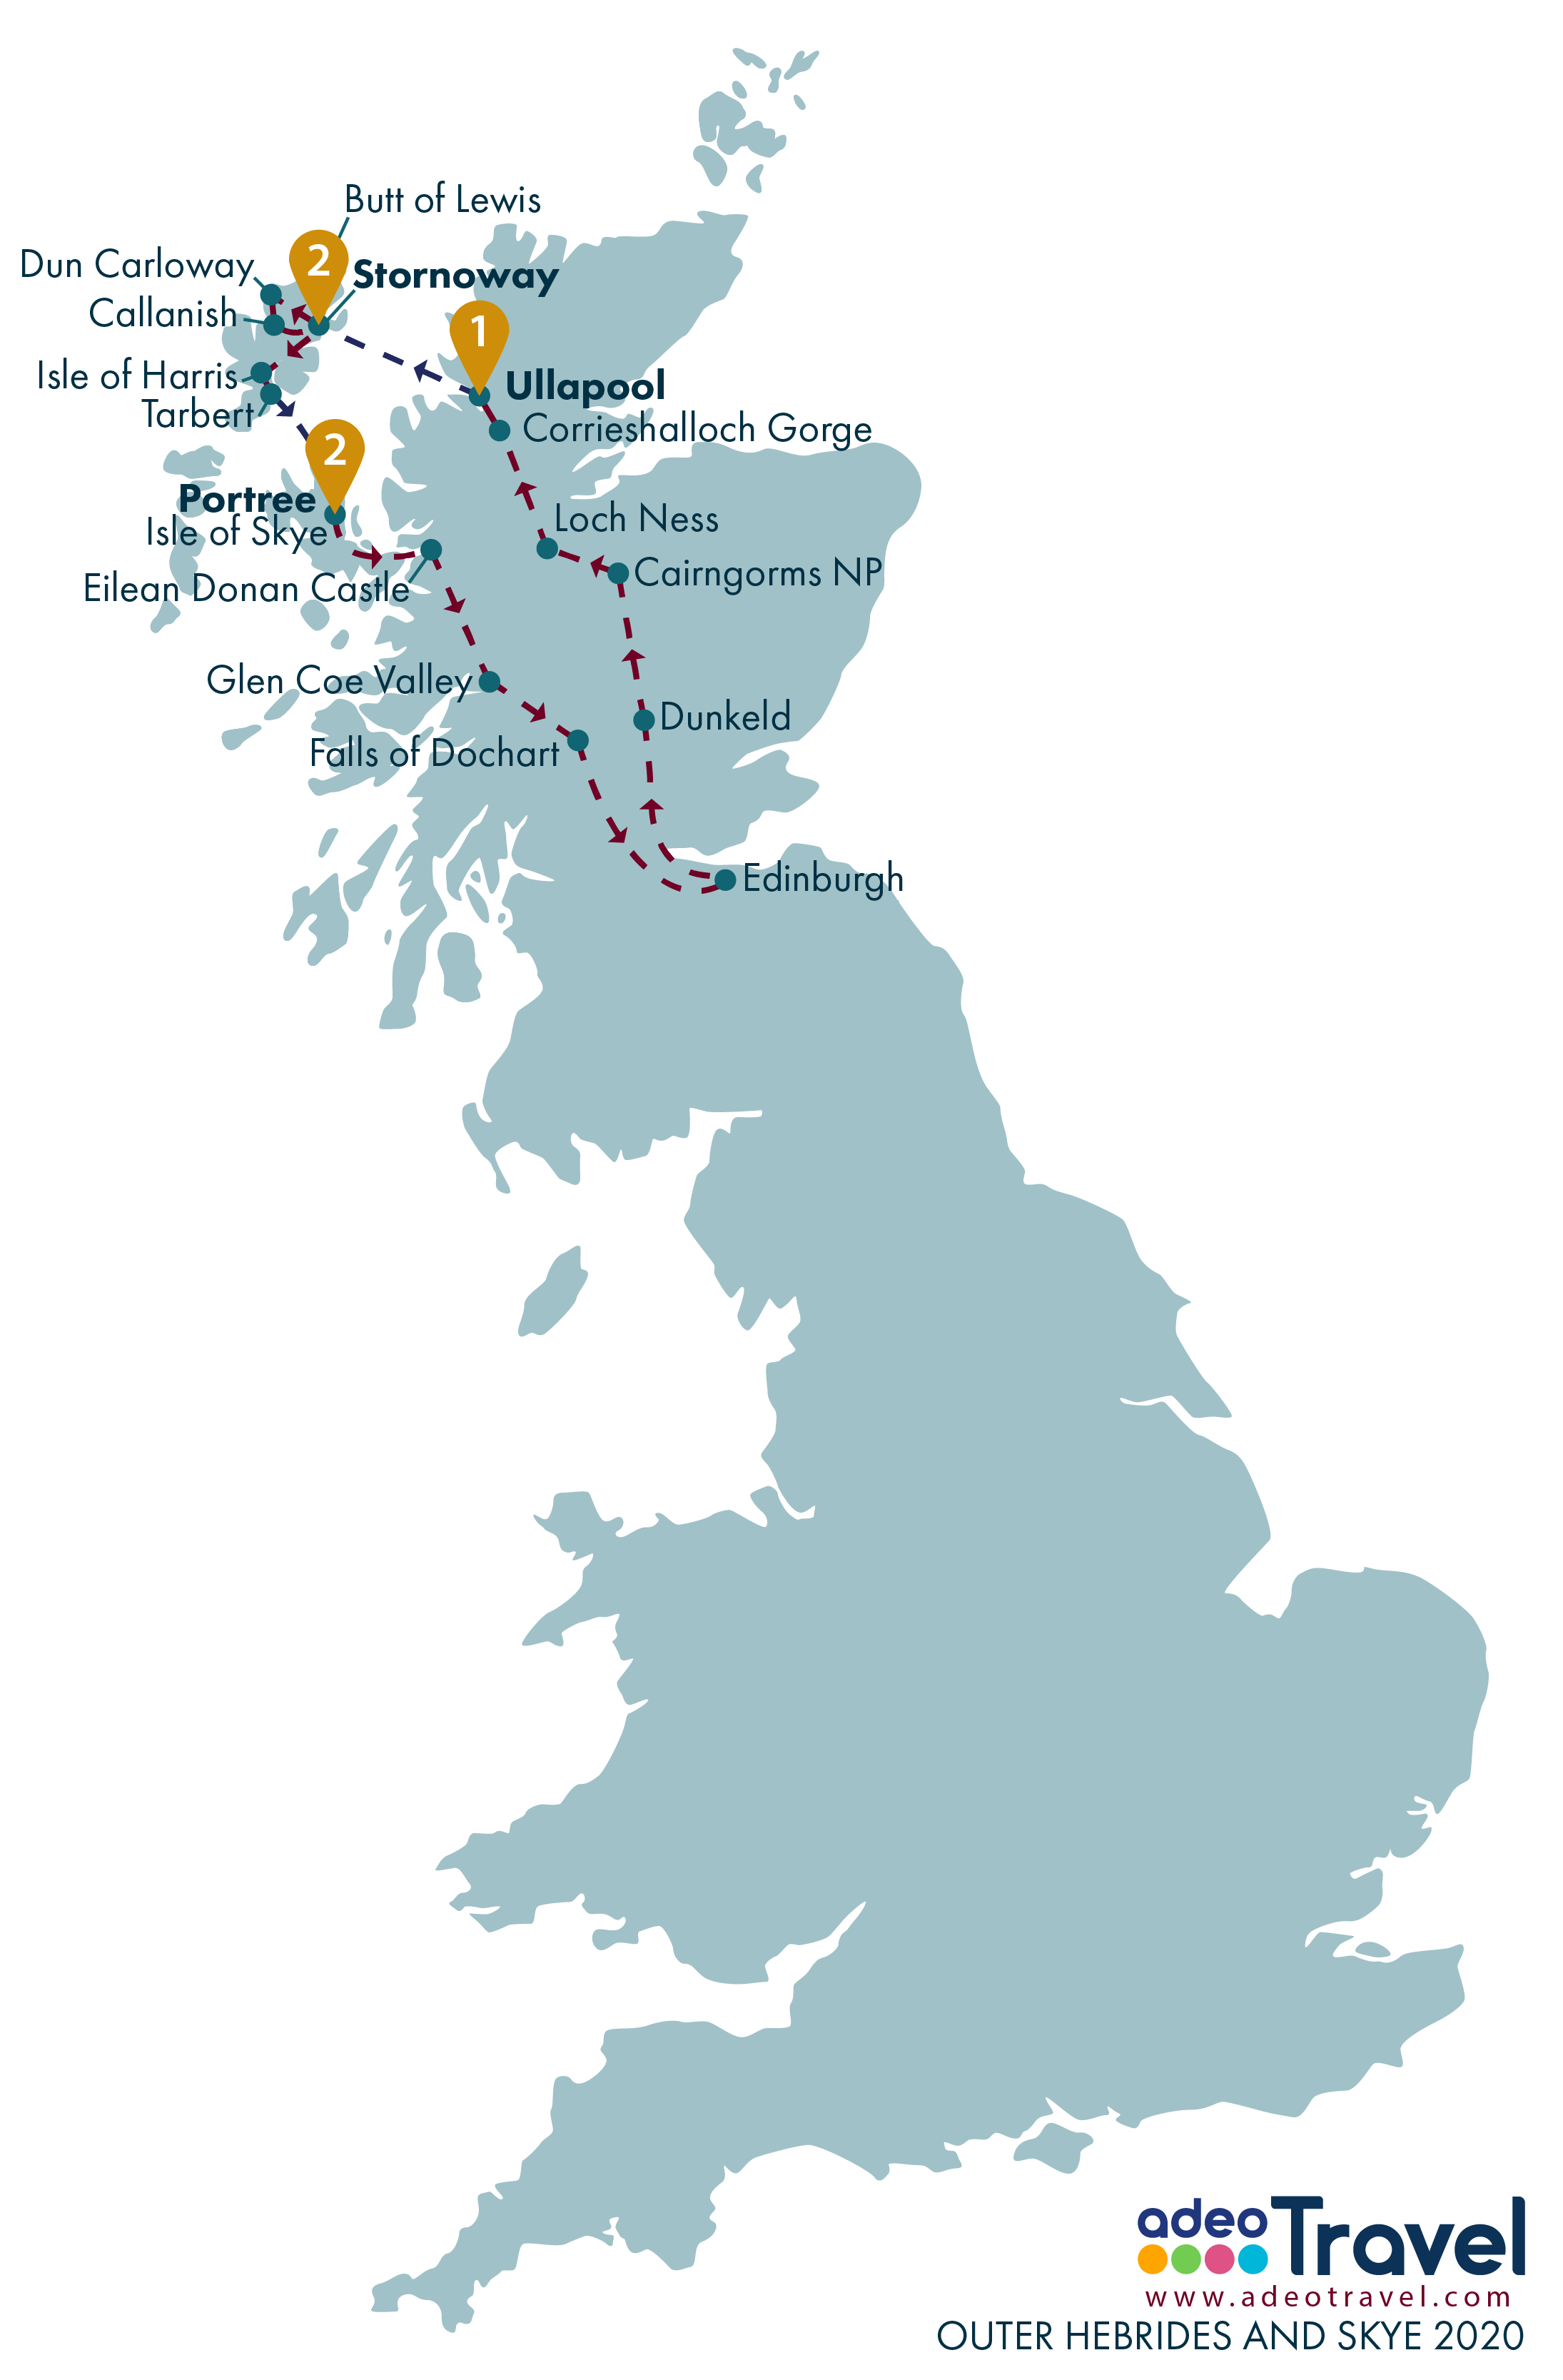 Map - Outer Hebrides and Skye 2020